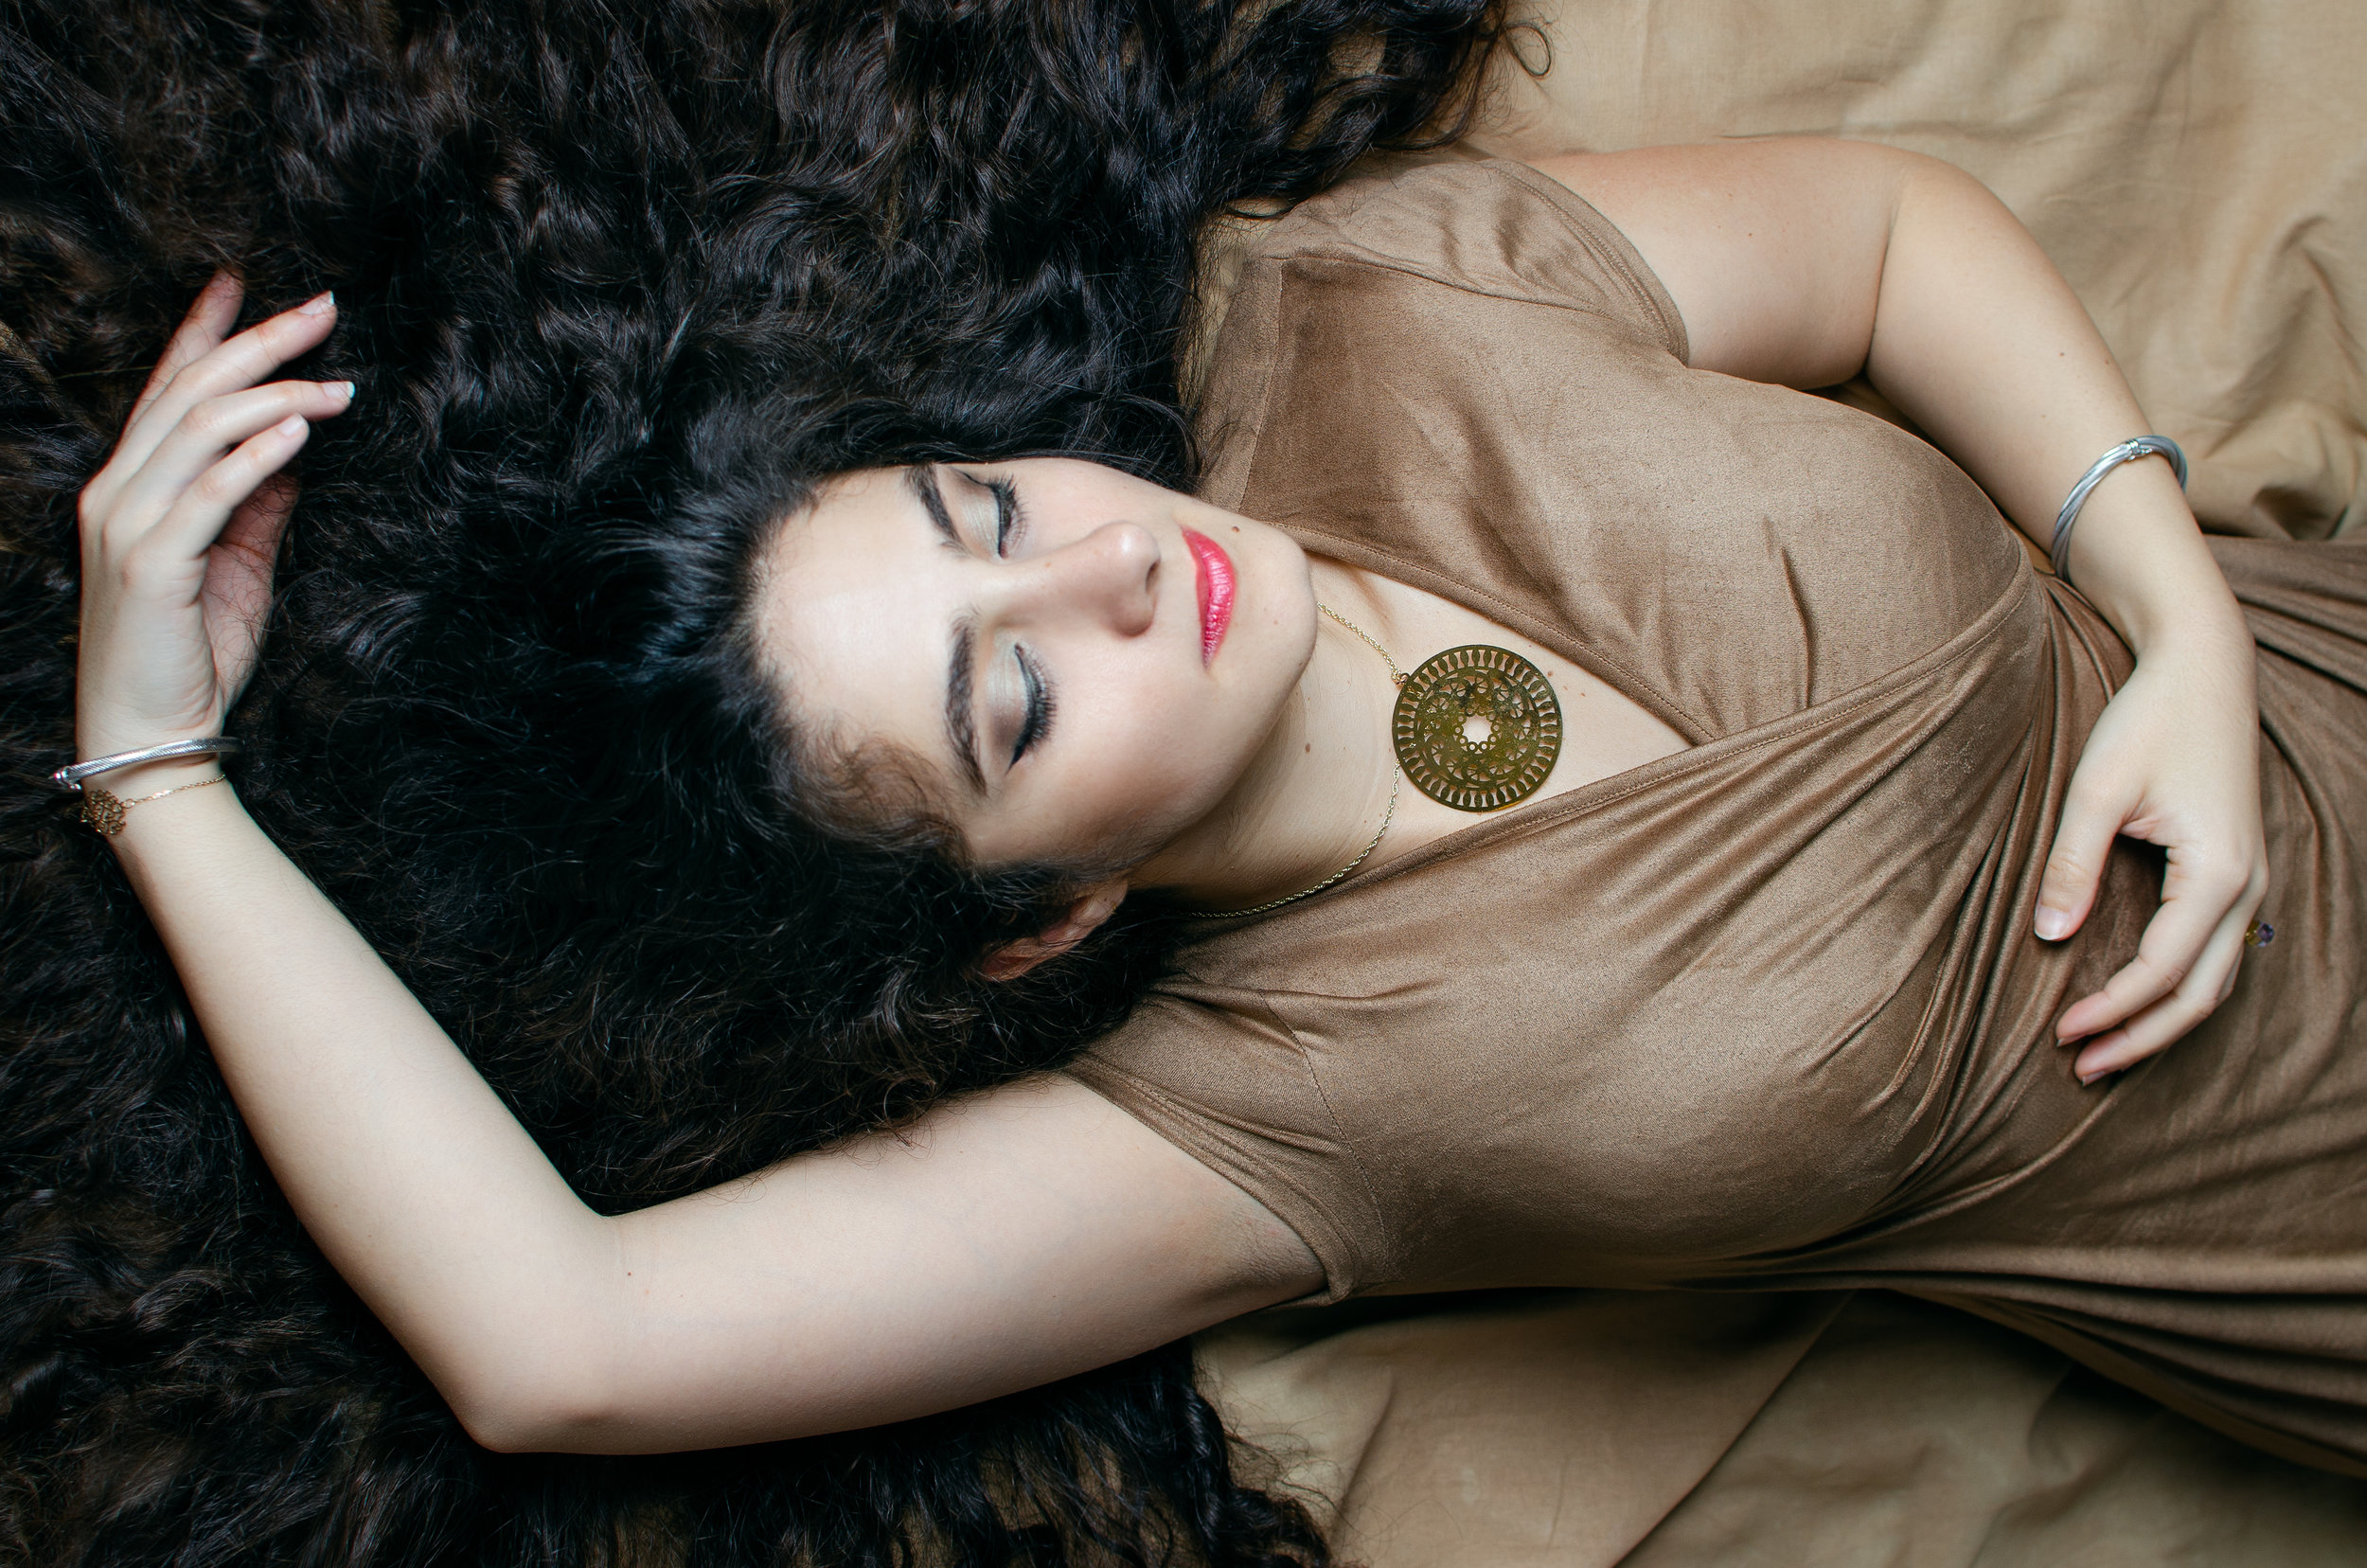 paris-portrait-lady-lying-curly-hair-sleeping-beauty